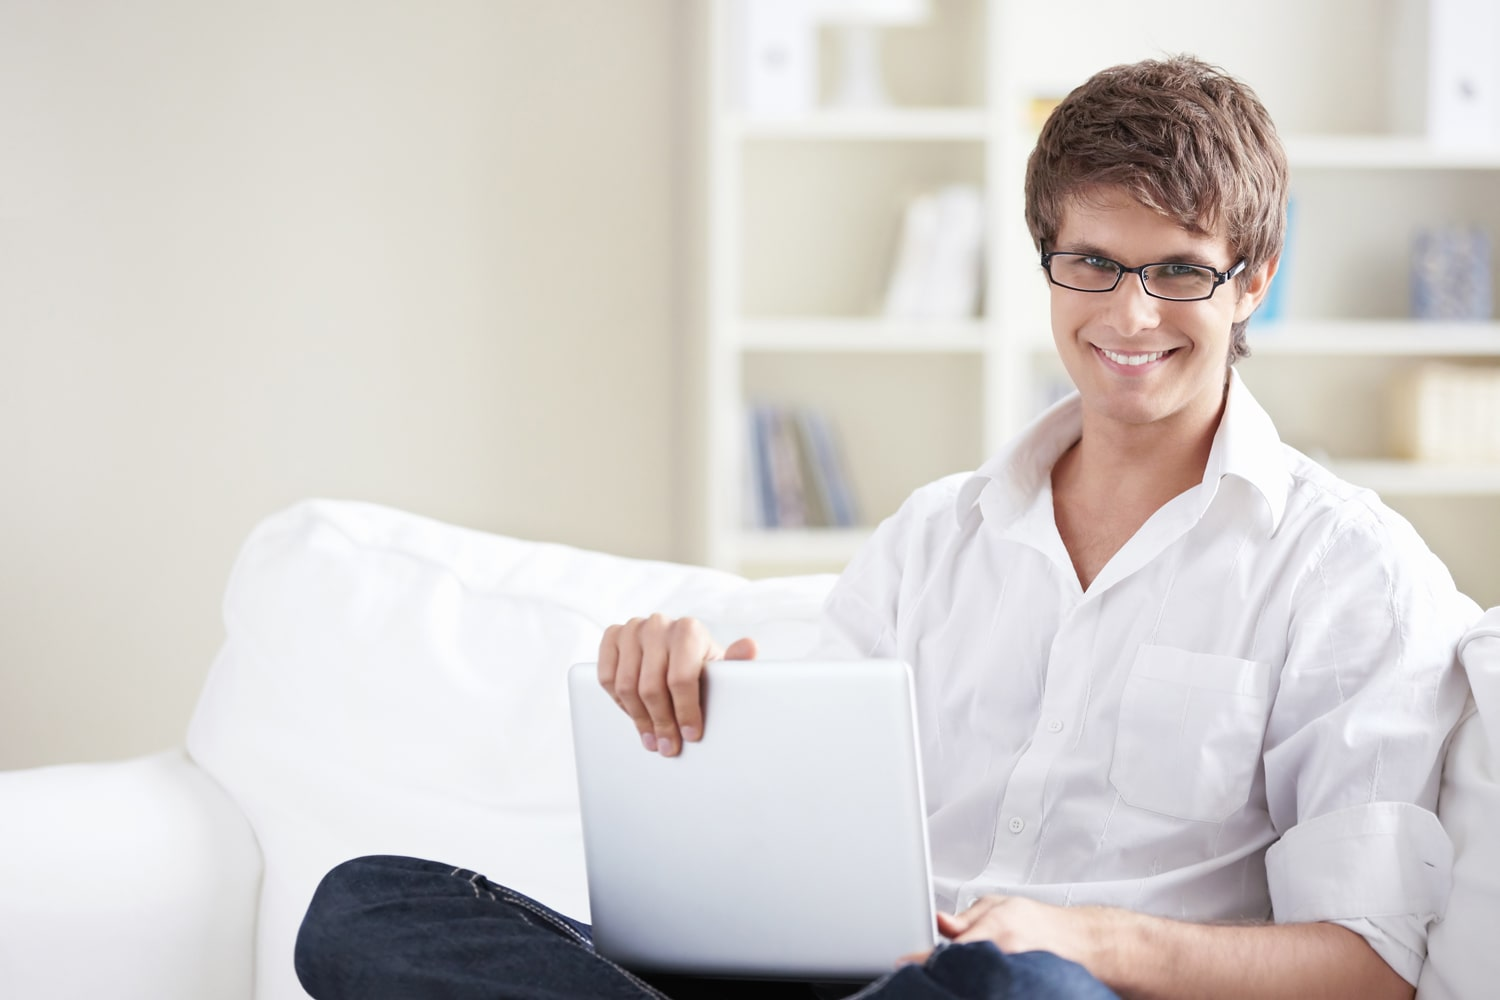 A young man with laptop